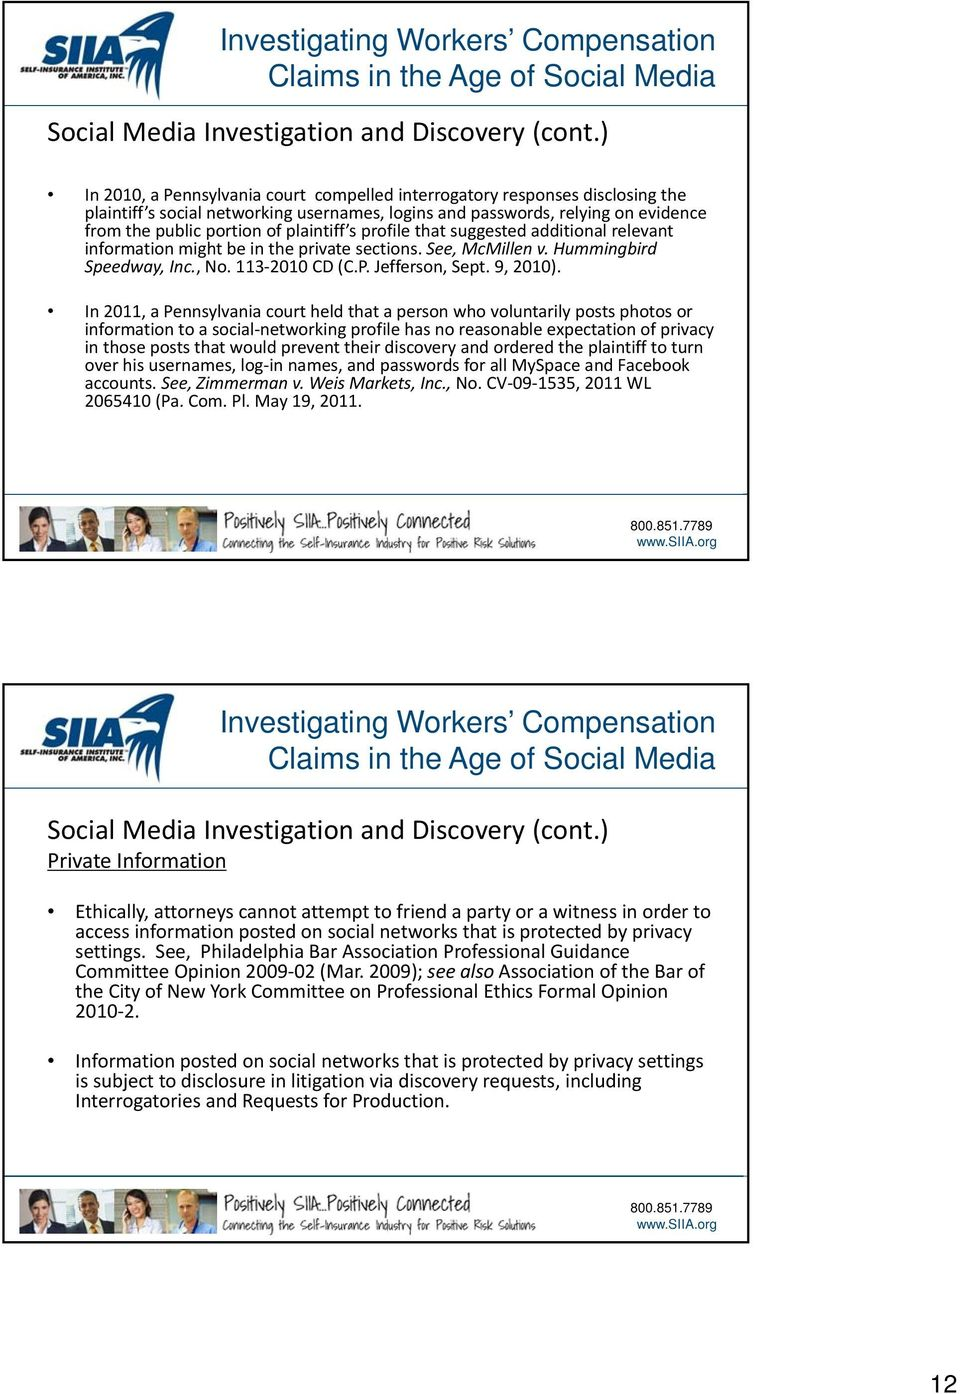 Investigating Workers Compensation Claims in the Age of Social Media